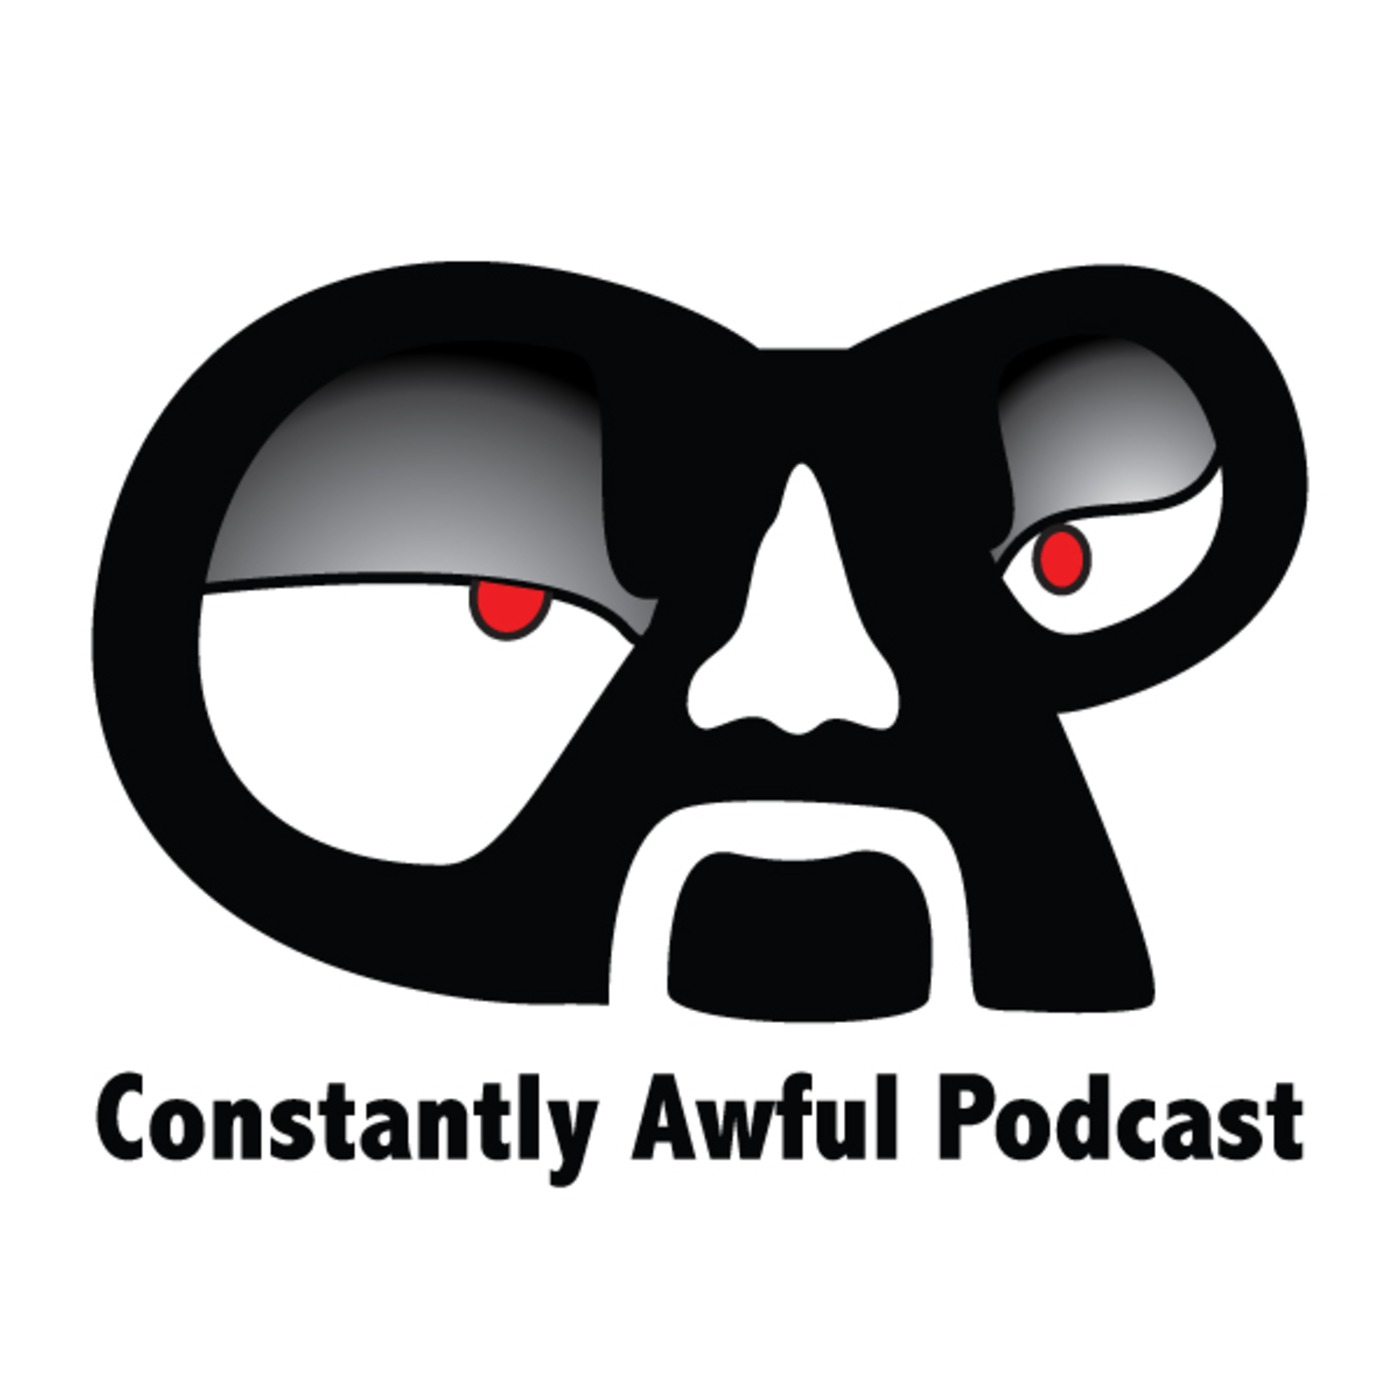 Constantly Awful Podcast